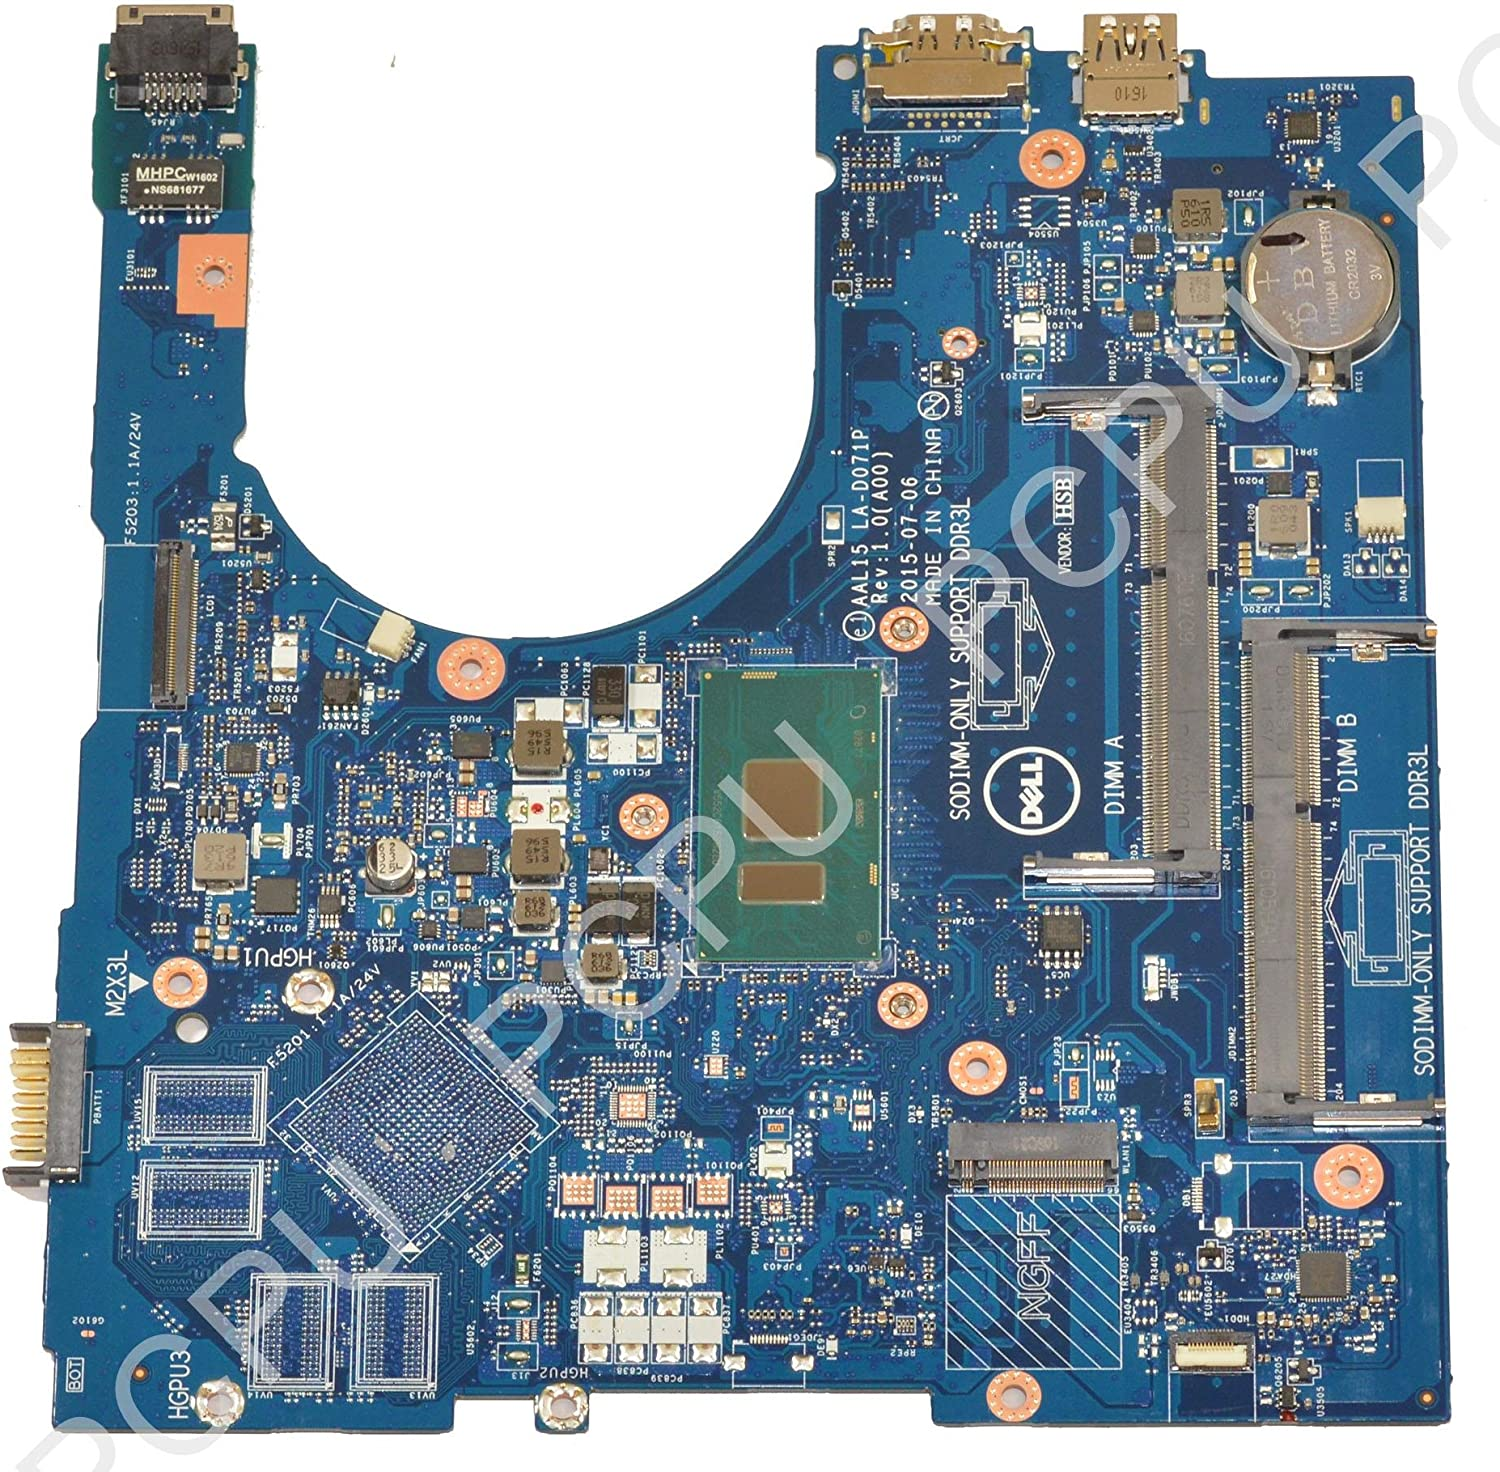 Dell Inspiron 15 5559 Laptop Motherboard w/Intel i3-6100U 2.3Ghz CPU